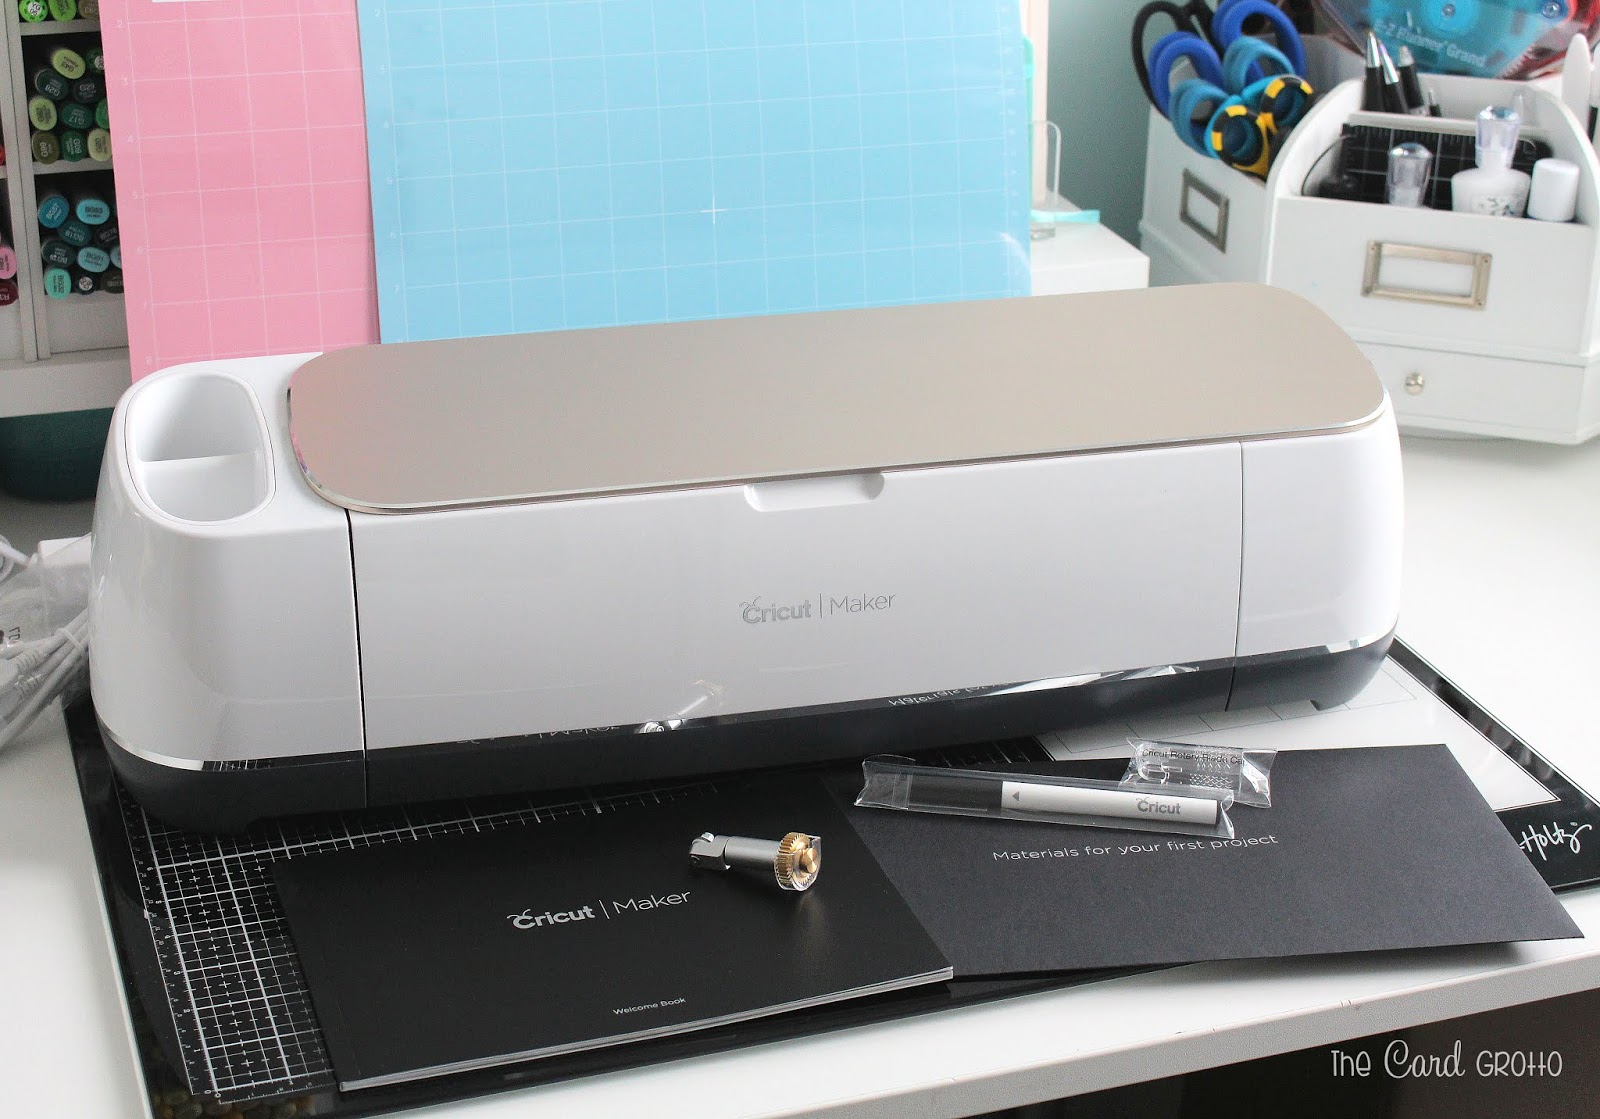 The Card Grotto: Review | Cricut Maker